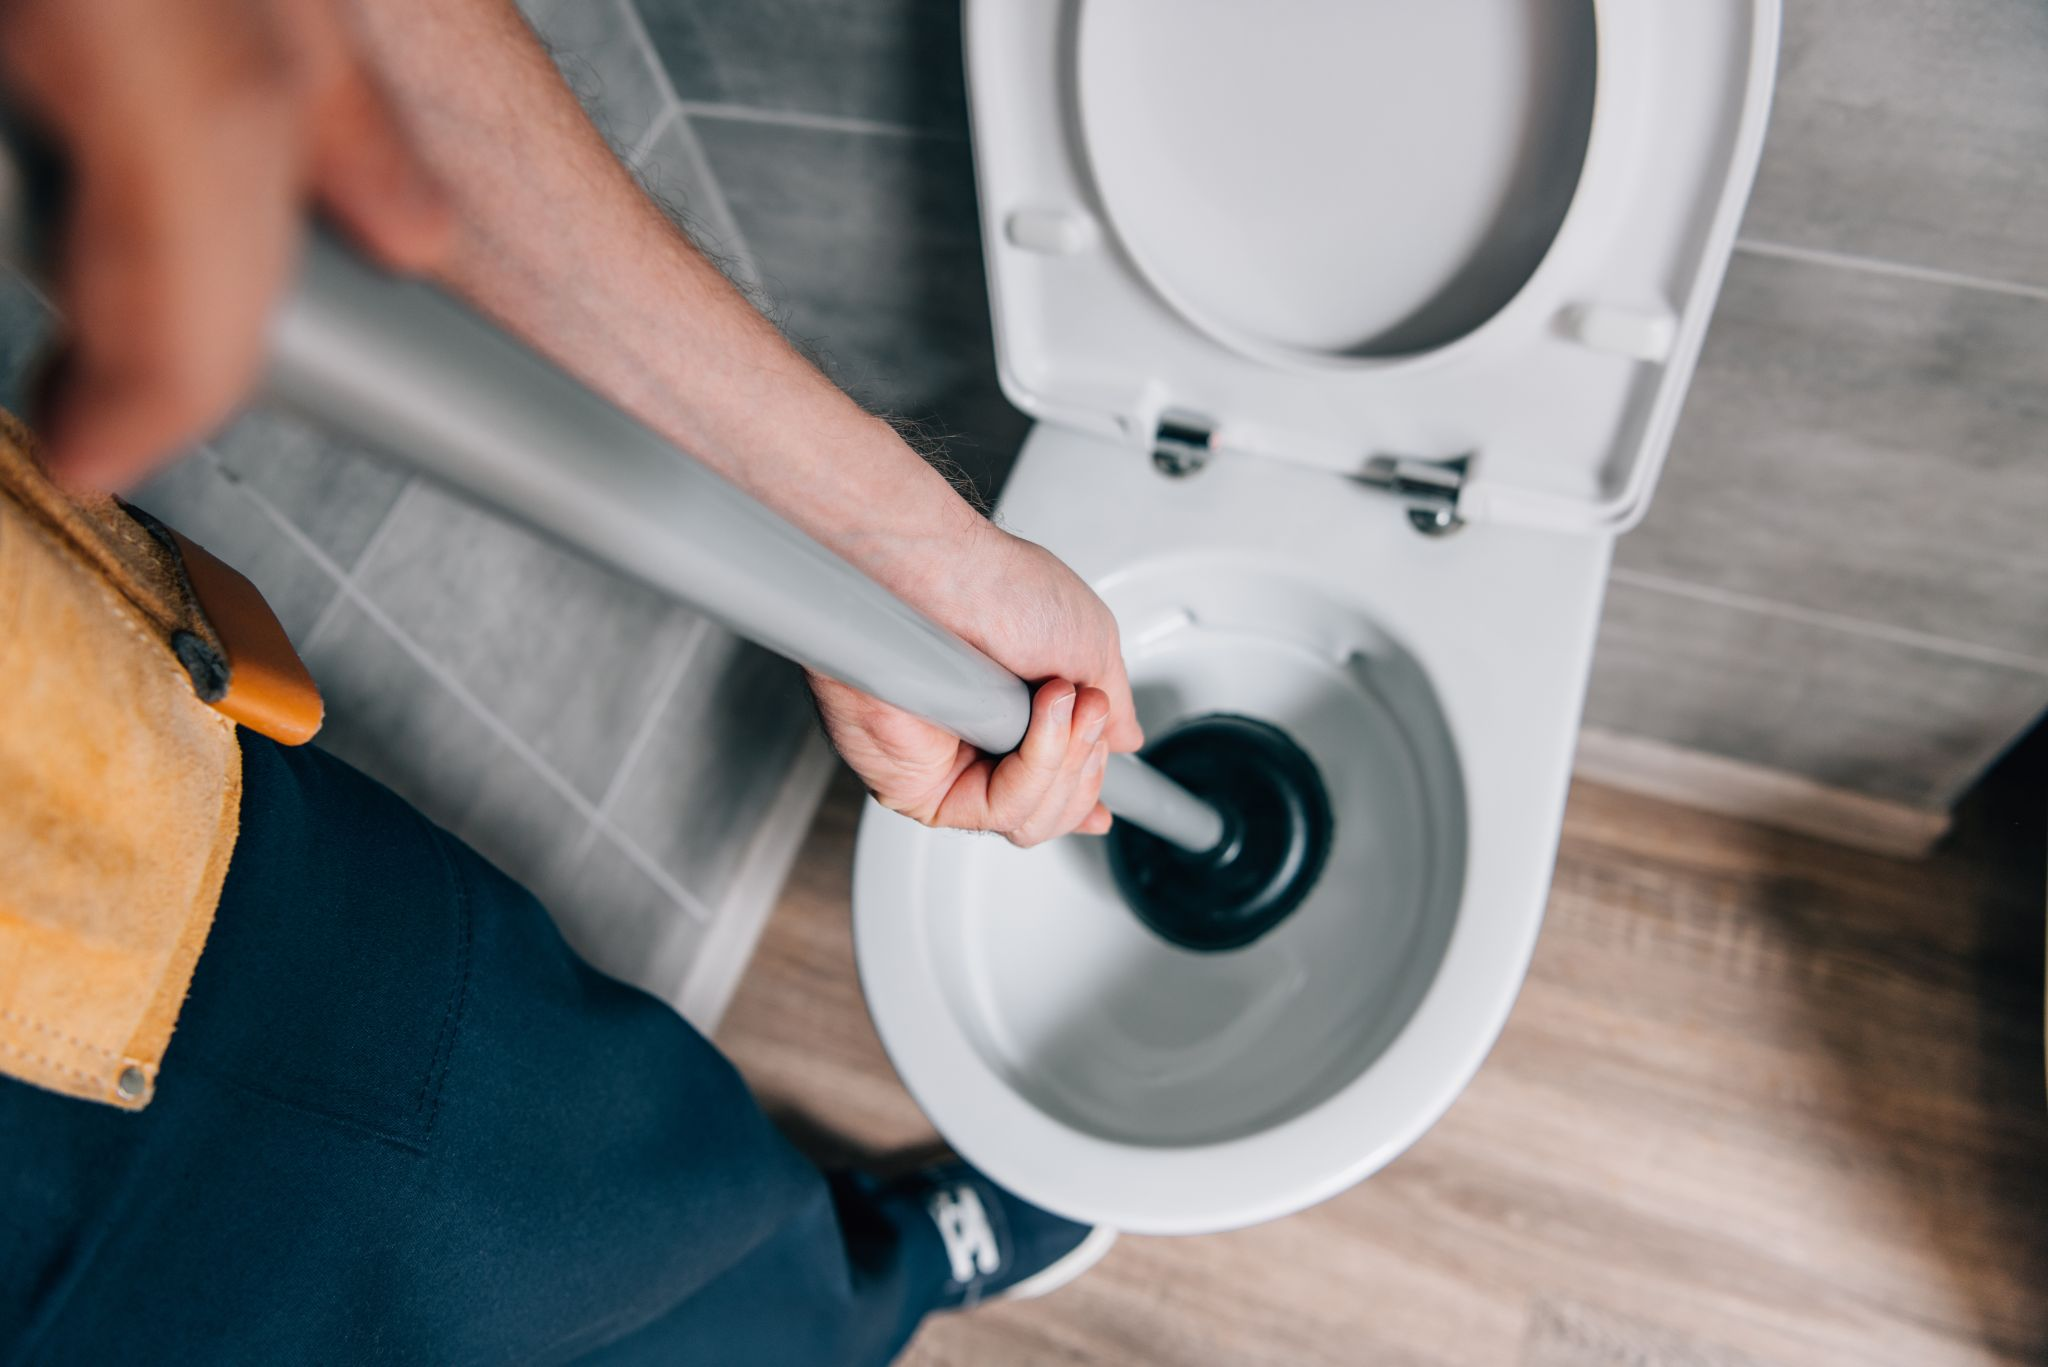 male plumber using plunger and cleaning toilet in bathroom